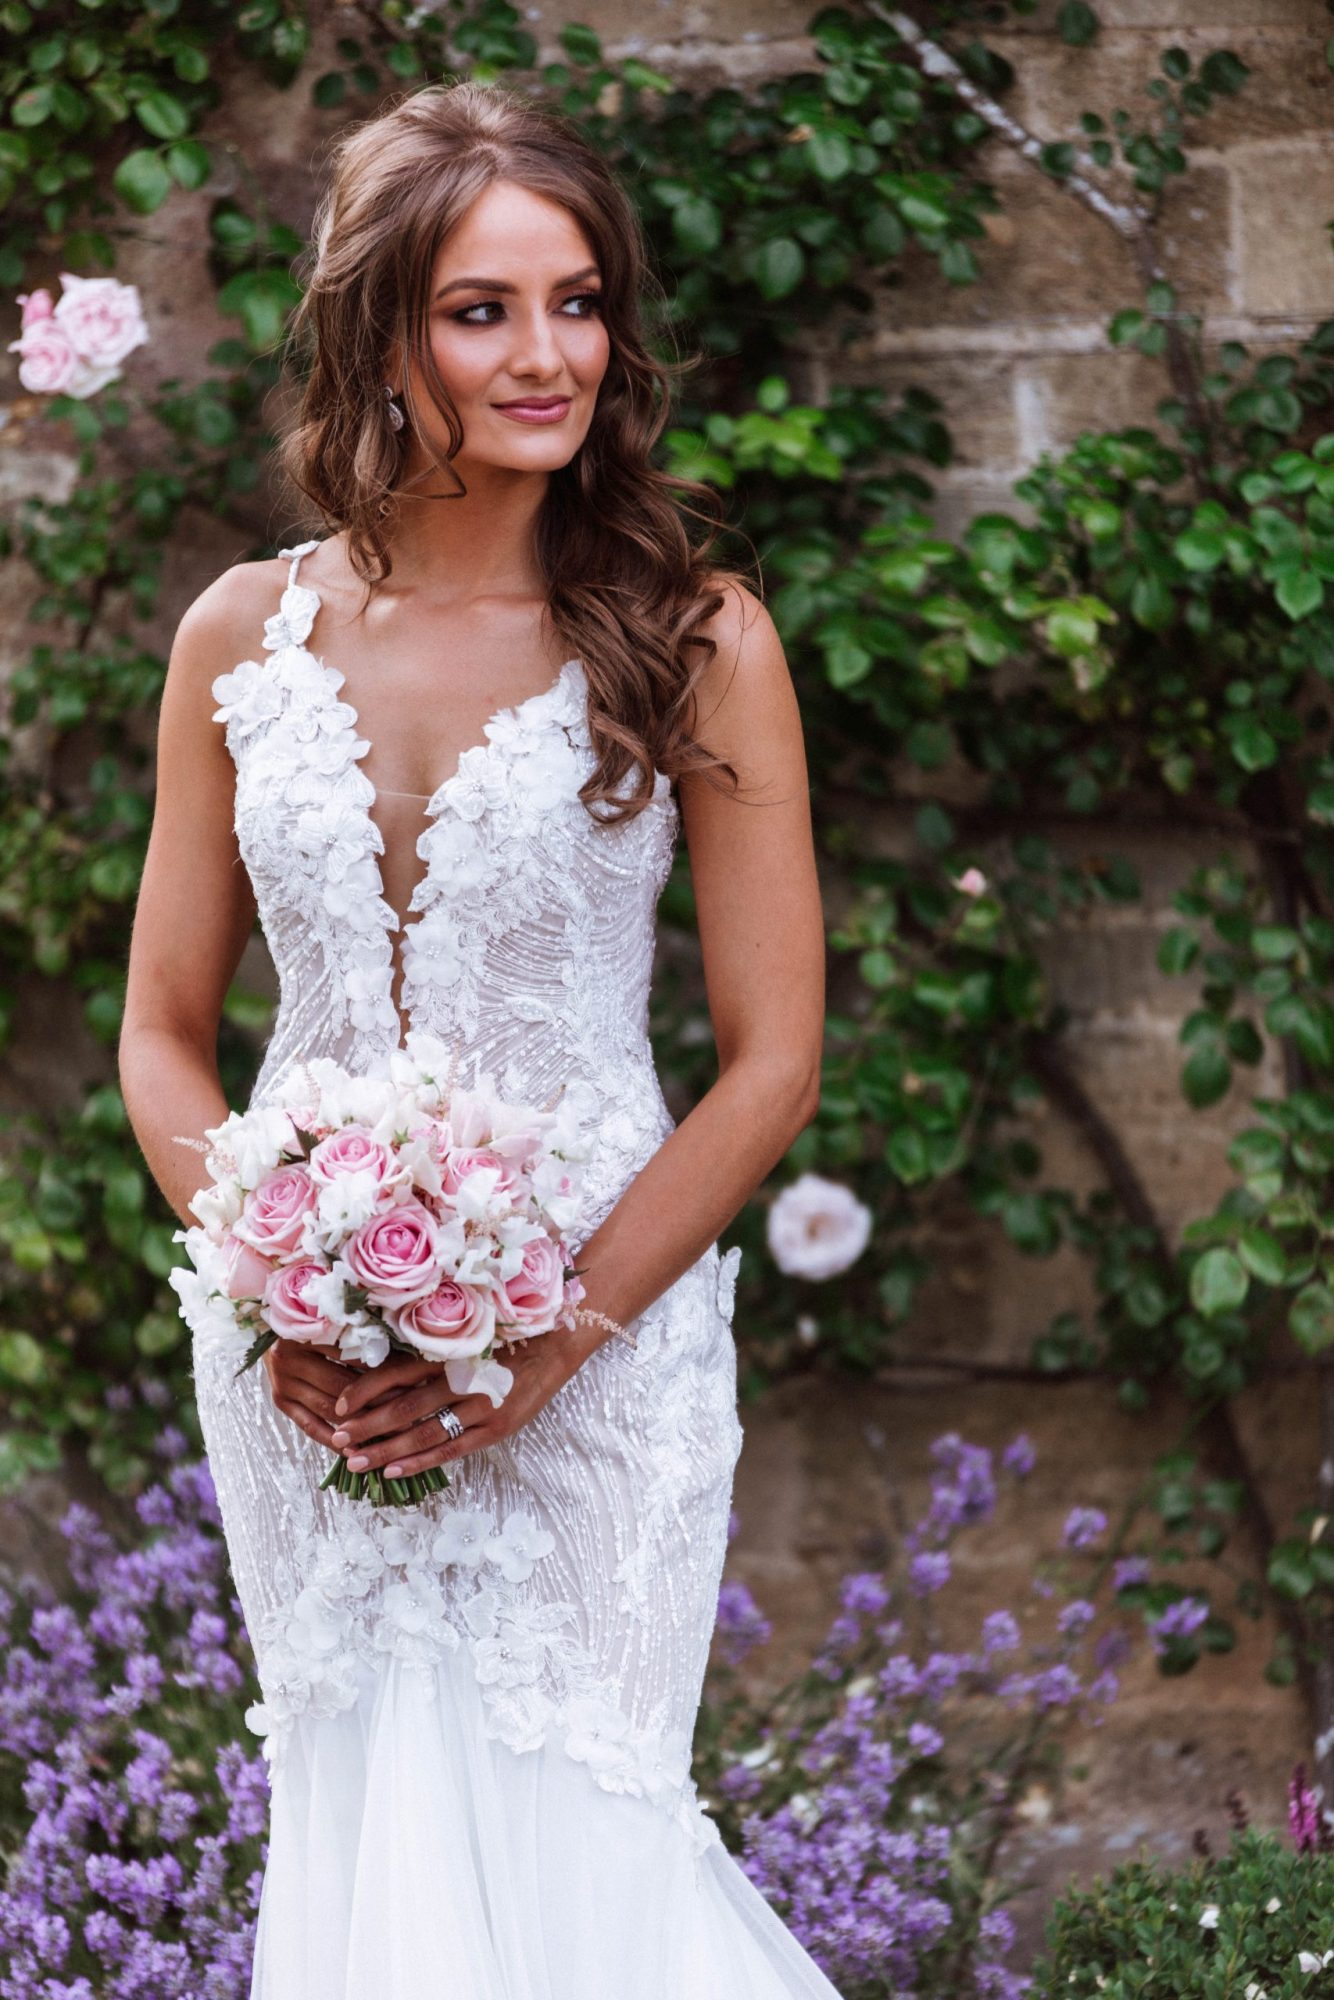 Bridal Hair services | Prices for Michelle Crosser | Hampshire bridal hair services